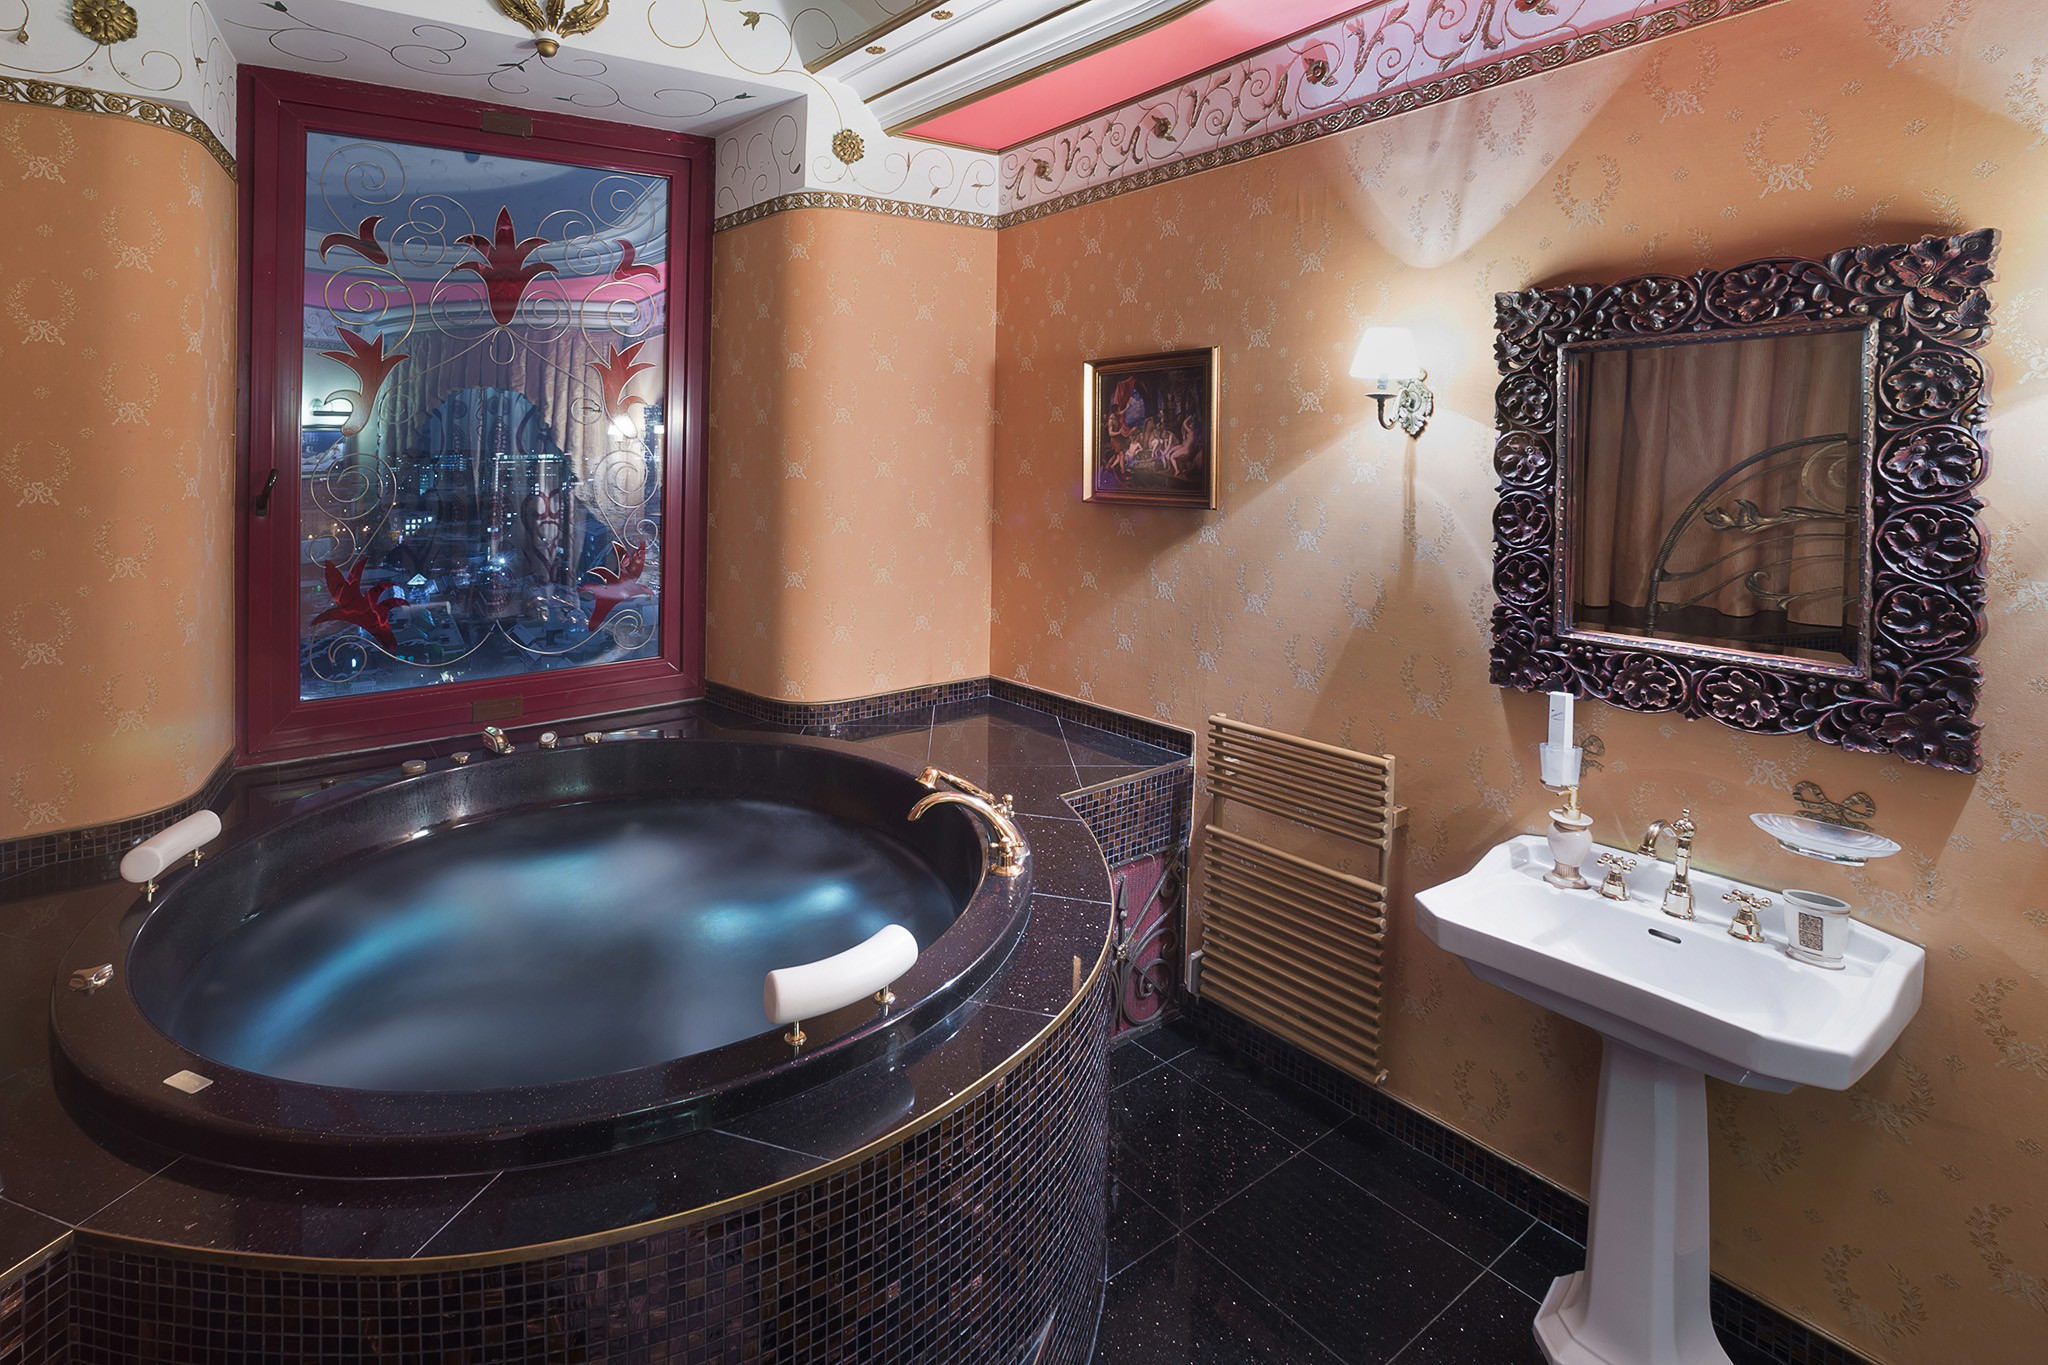 Red Hotel room + Jacuzzi. Interior photography of a private hotel in the center of Moscow